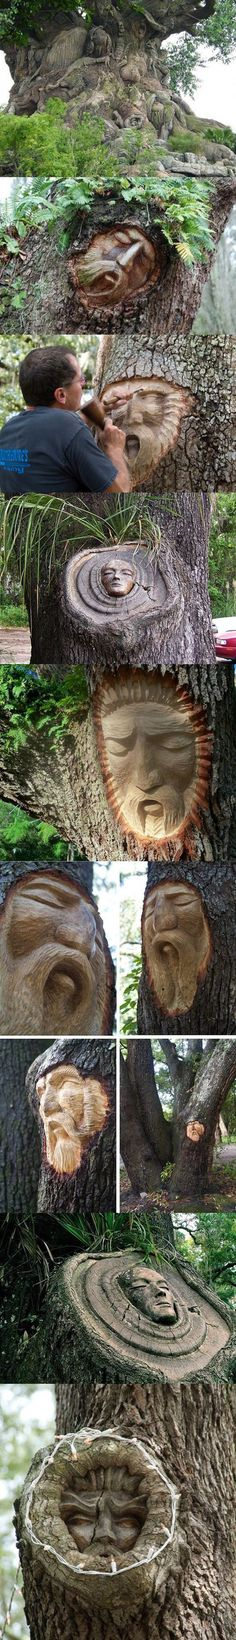 I'm pretty sure the first pic is a fake tree from Animal Kingdom, but the other with faces carved into trees are pretty awesome.